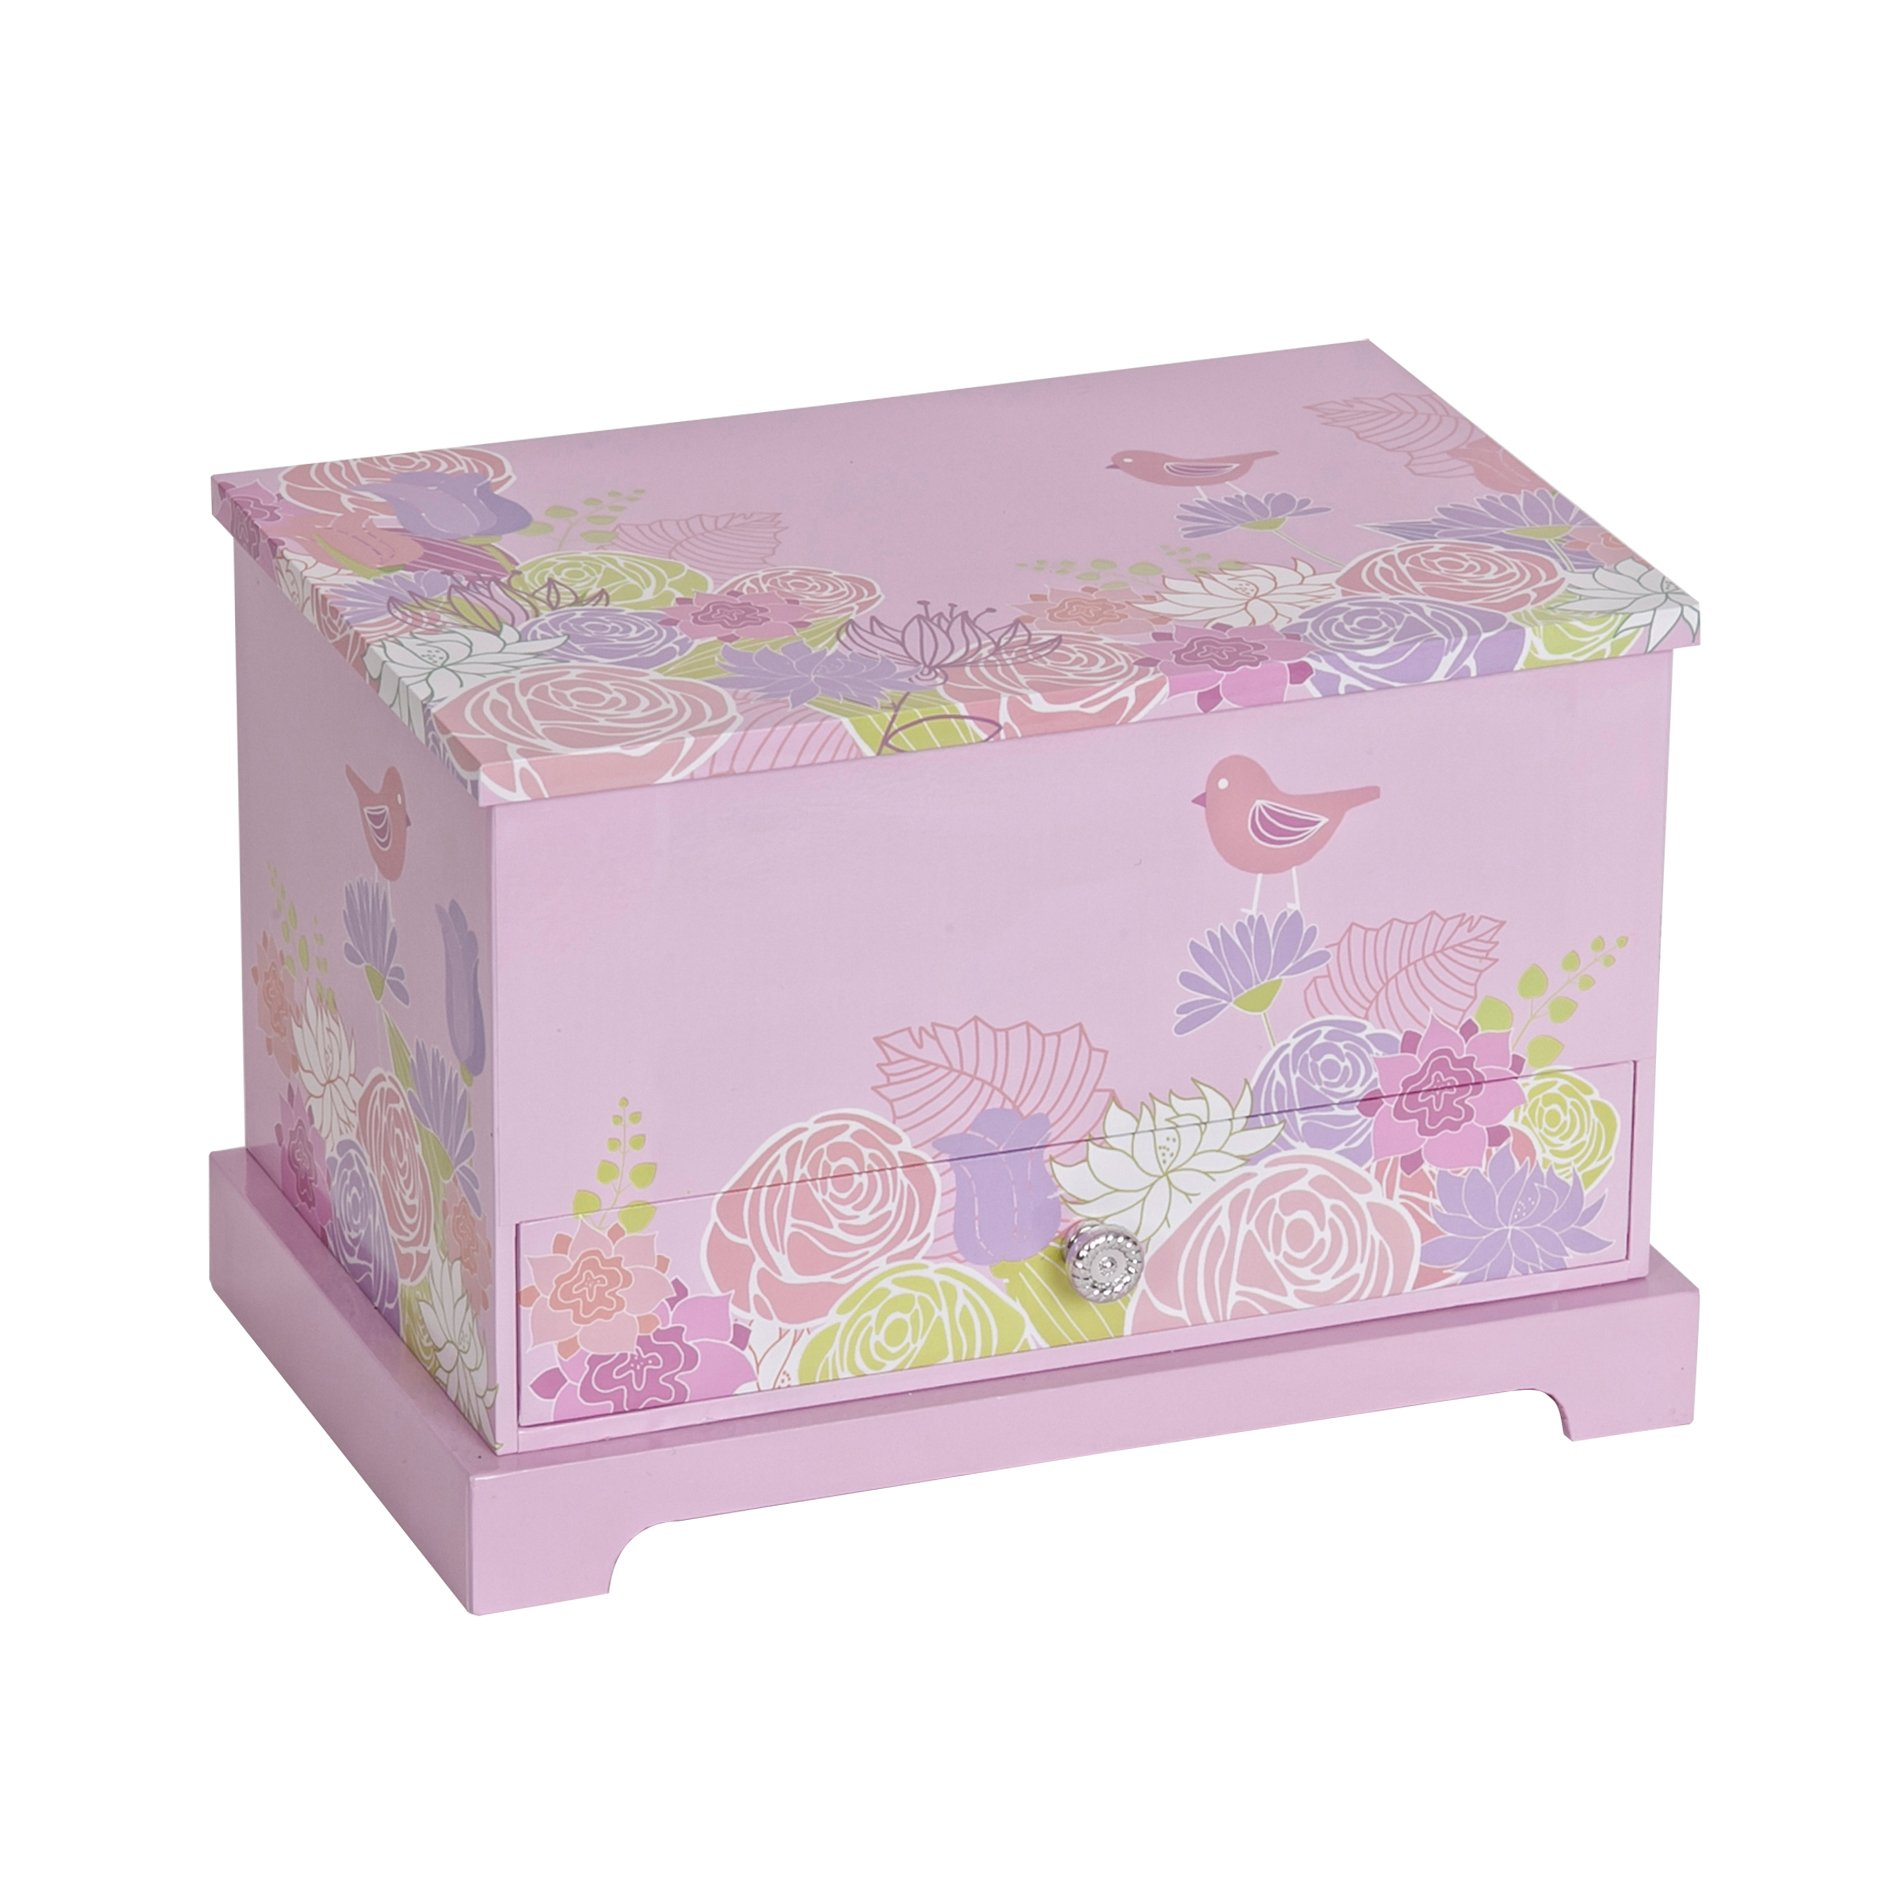 Mele & Co. Piper Girl's Musical Ballerina Jewelry Box (Bird & Blooms Design)